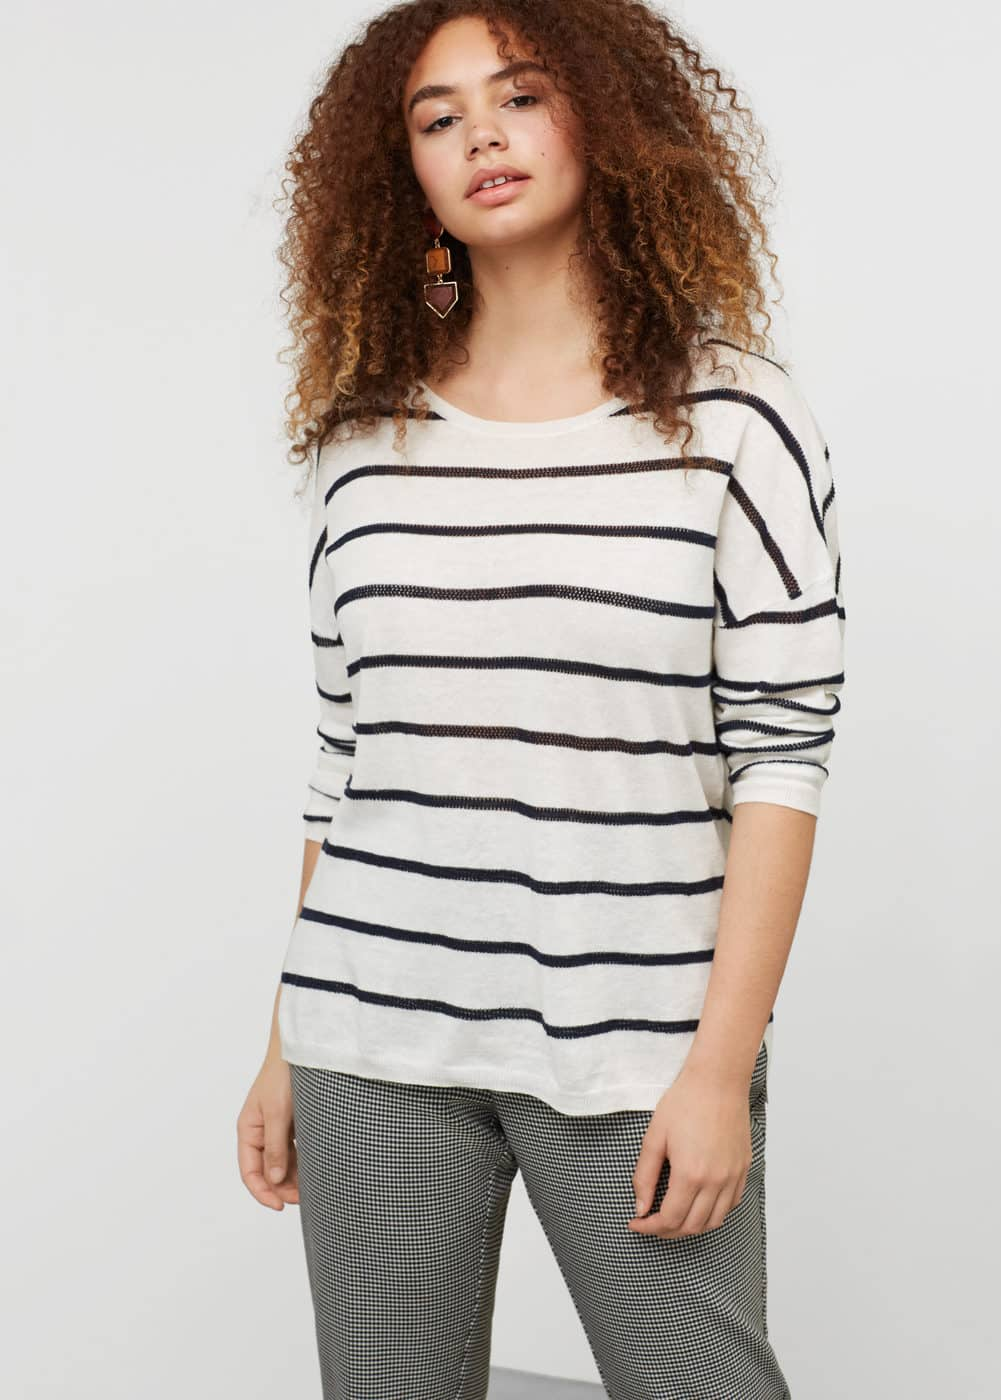 Striped cotton linen-blend sweater | VIOLETA BY MANGO